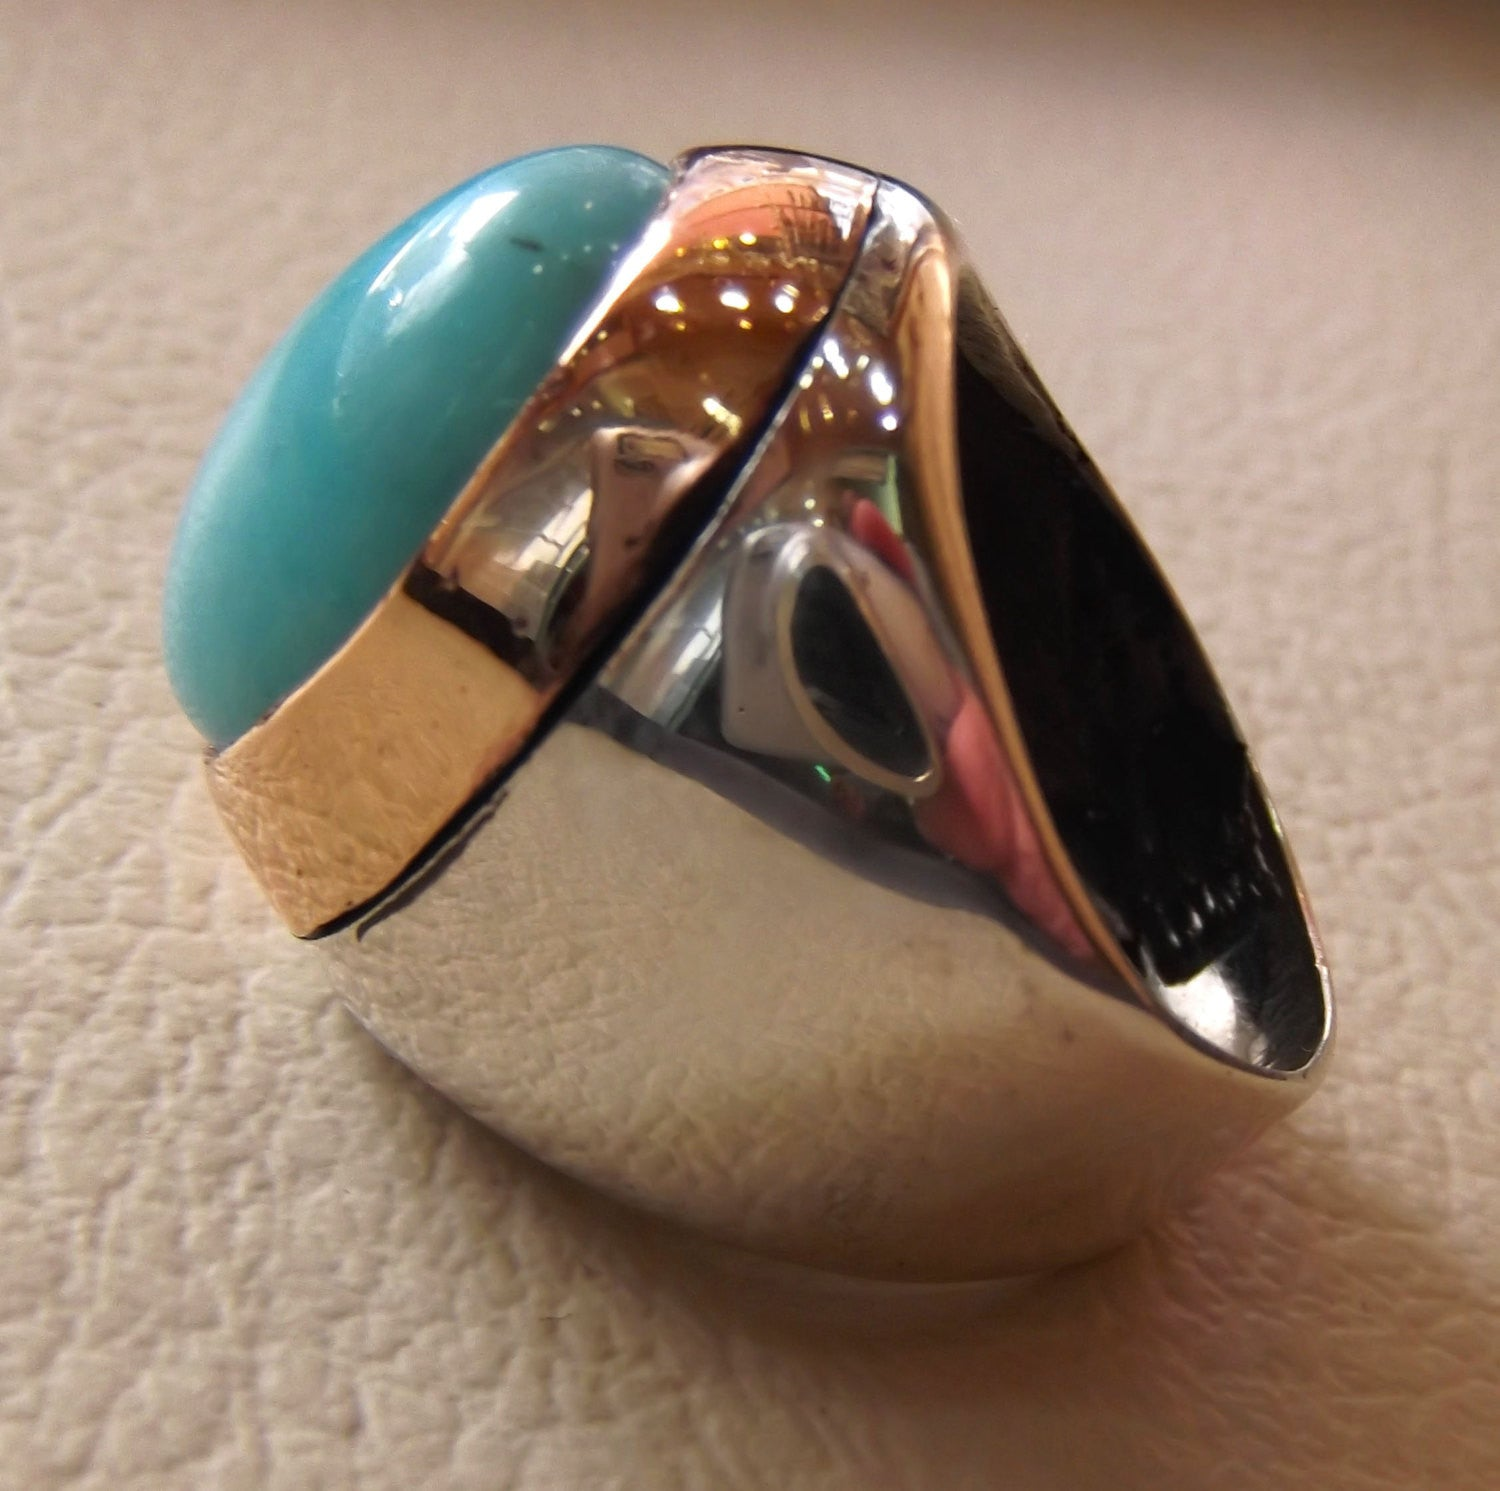 amazonite sky blue natural semi precious gem oval cabochon stone bronze frame sterling silver 925 man ring all sizes fast shipping jewelry